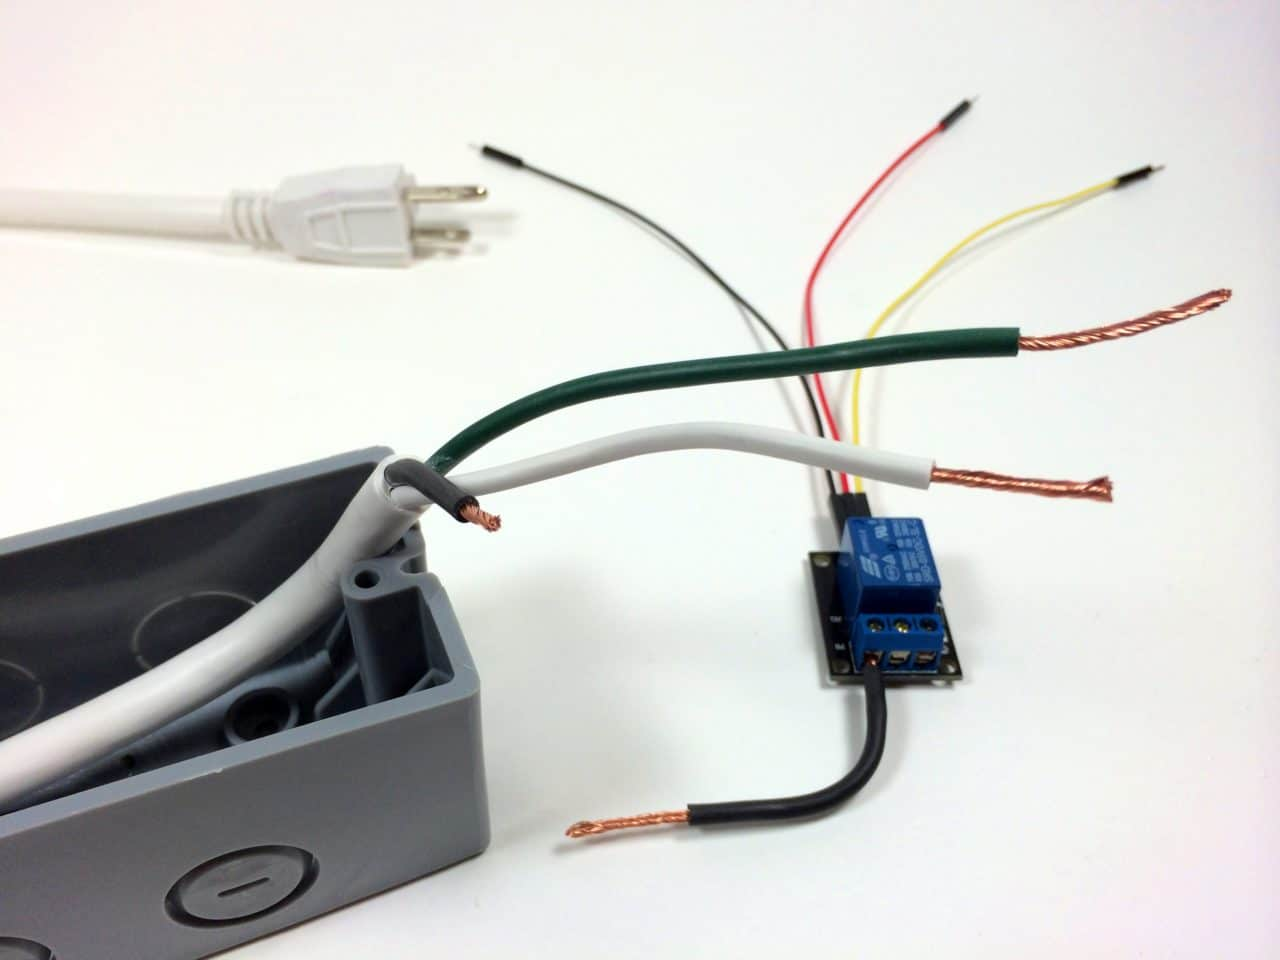 Build an Arduino Controlled Power Outlet - Stripping the Hot ...